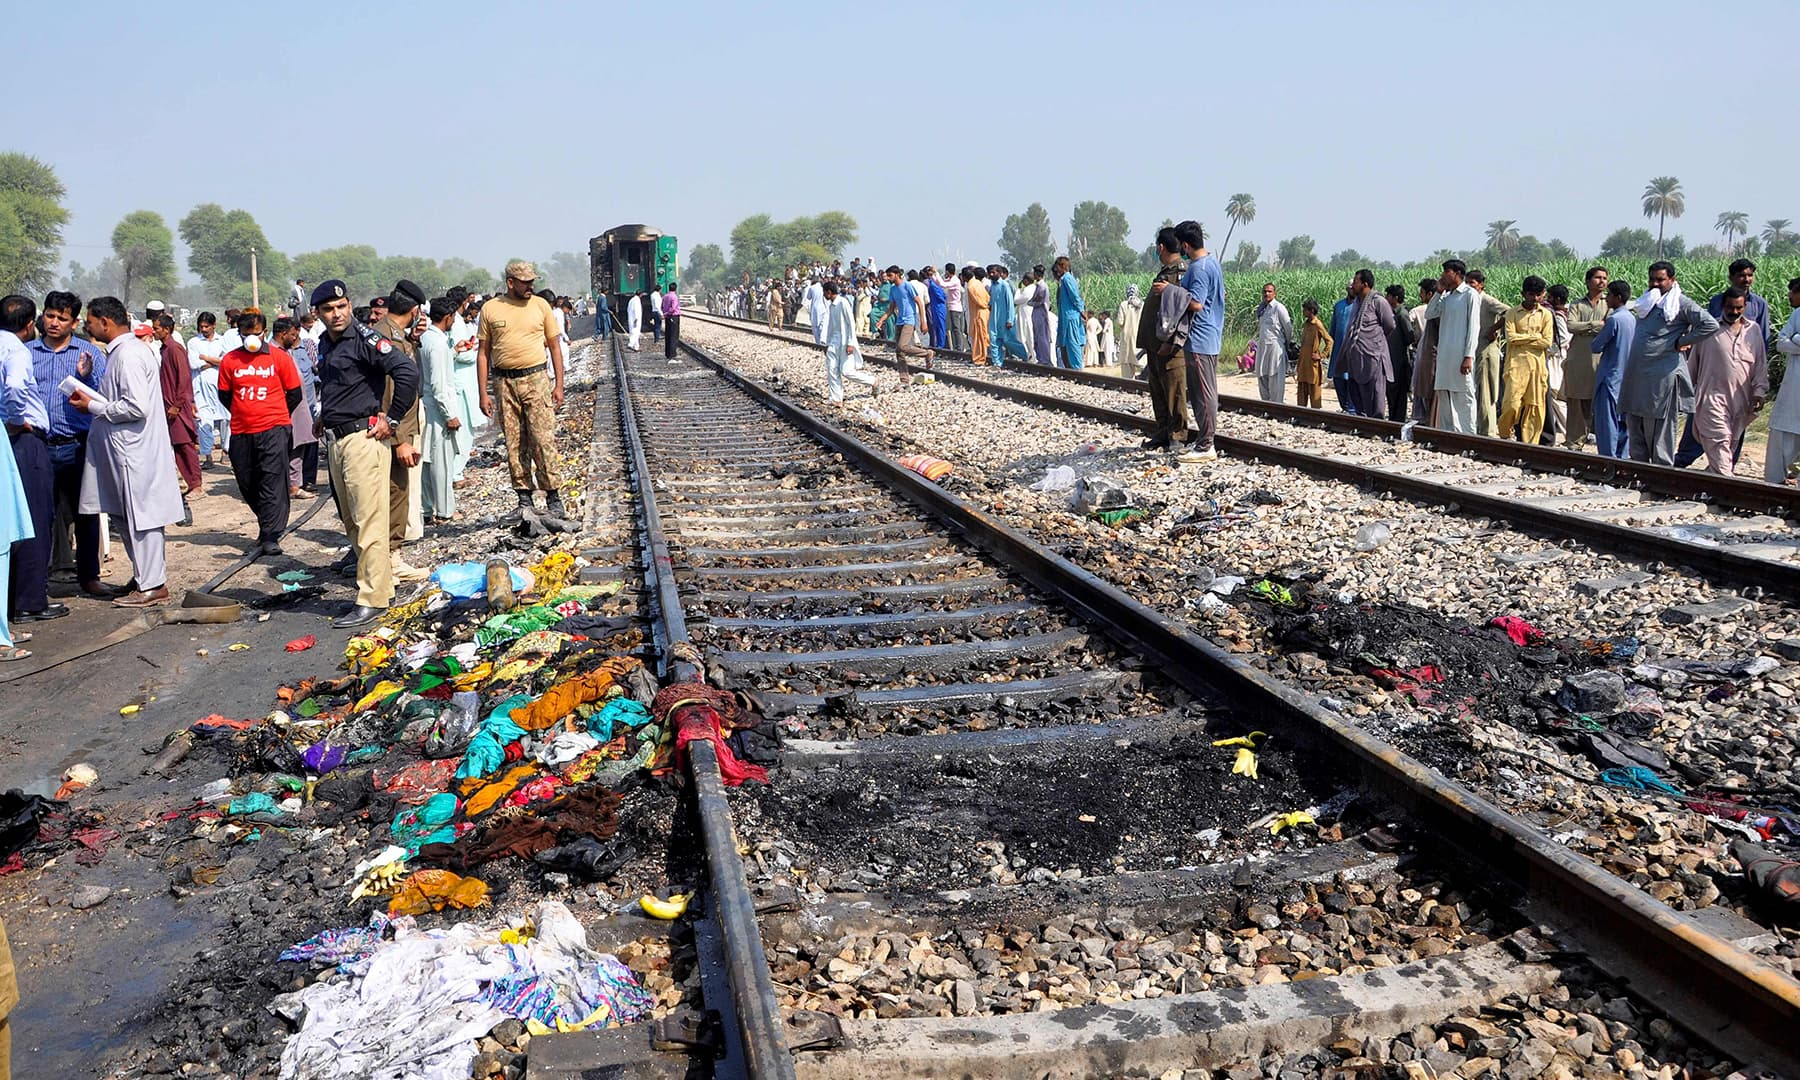 Security personnel and residents gather on a rail track after a passenger train caught on fire near Rahim Yar Khan on October 31. — AFP